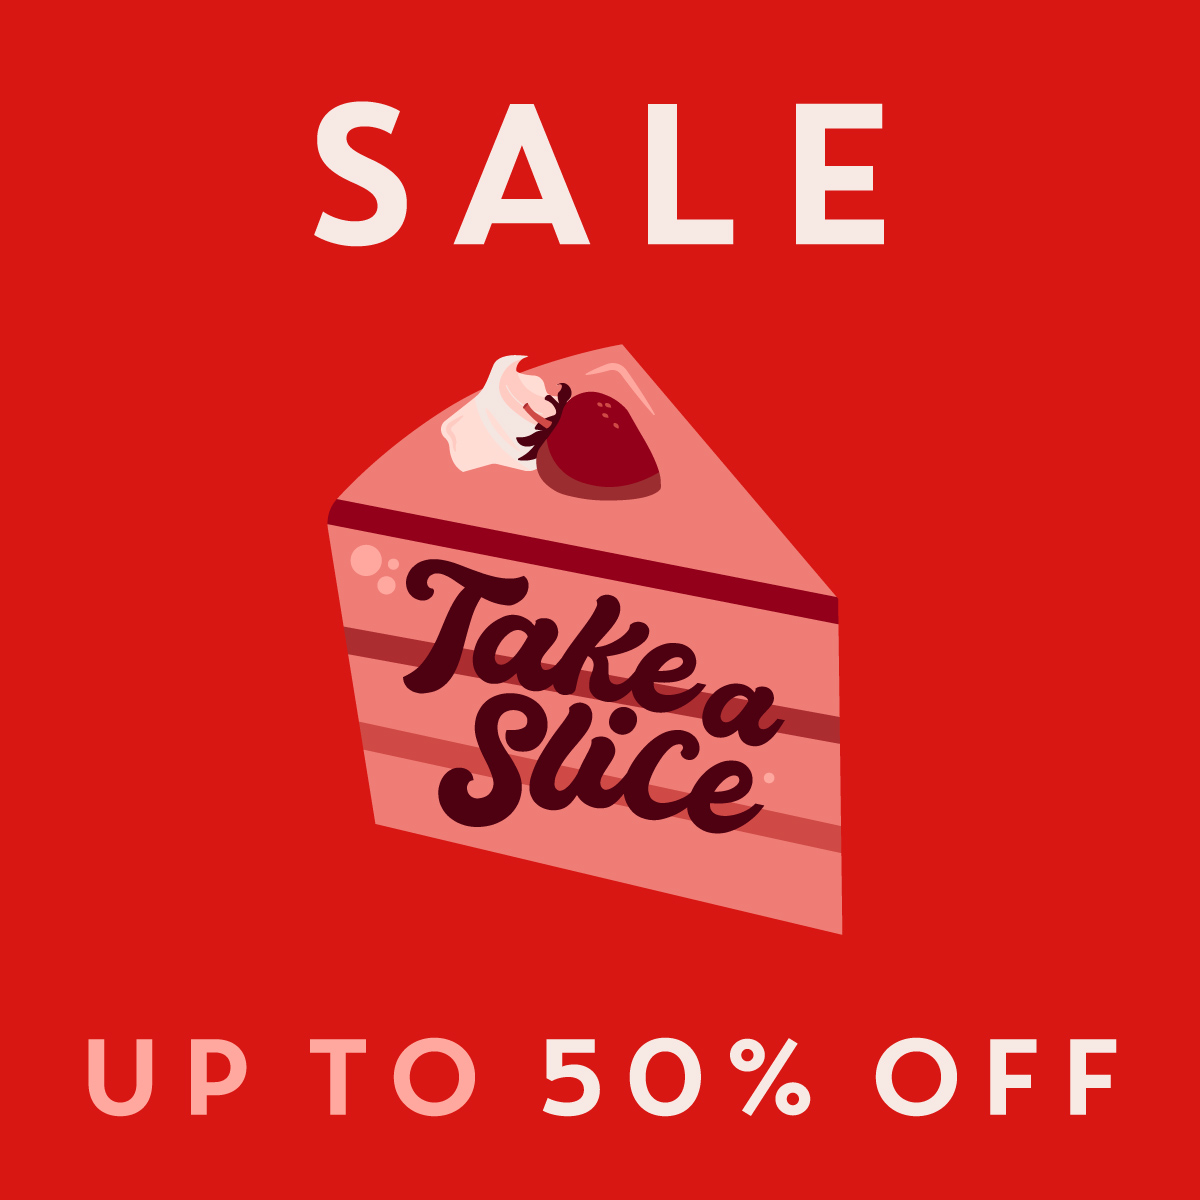 AW19 Sale up to 50% off